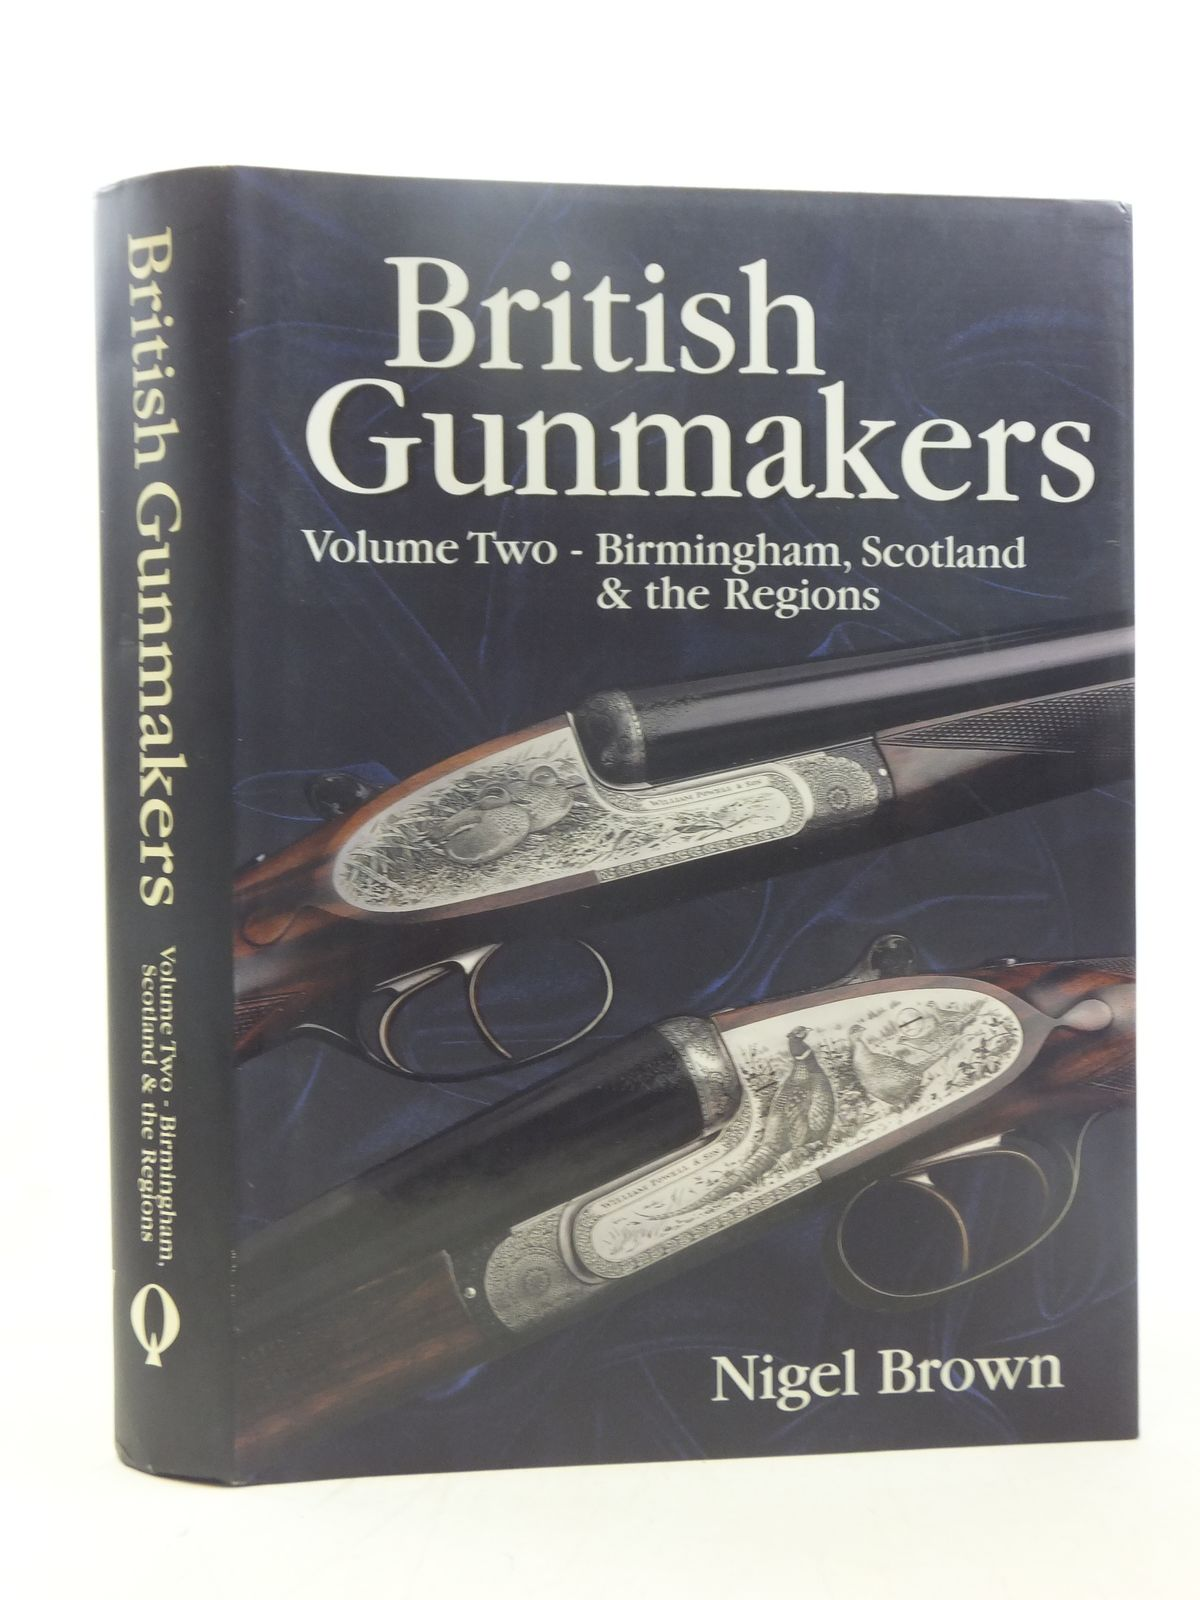 Photo of BRITISH GUNMAKERS VOLUME 2 written by Brown, Nigel published by Quiller Press (STOCK CODE: 1713653)  for sale by Stella & Rose's Books